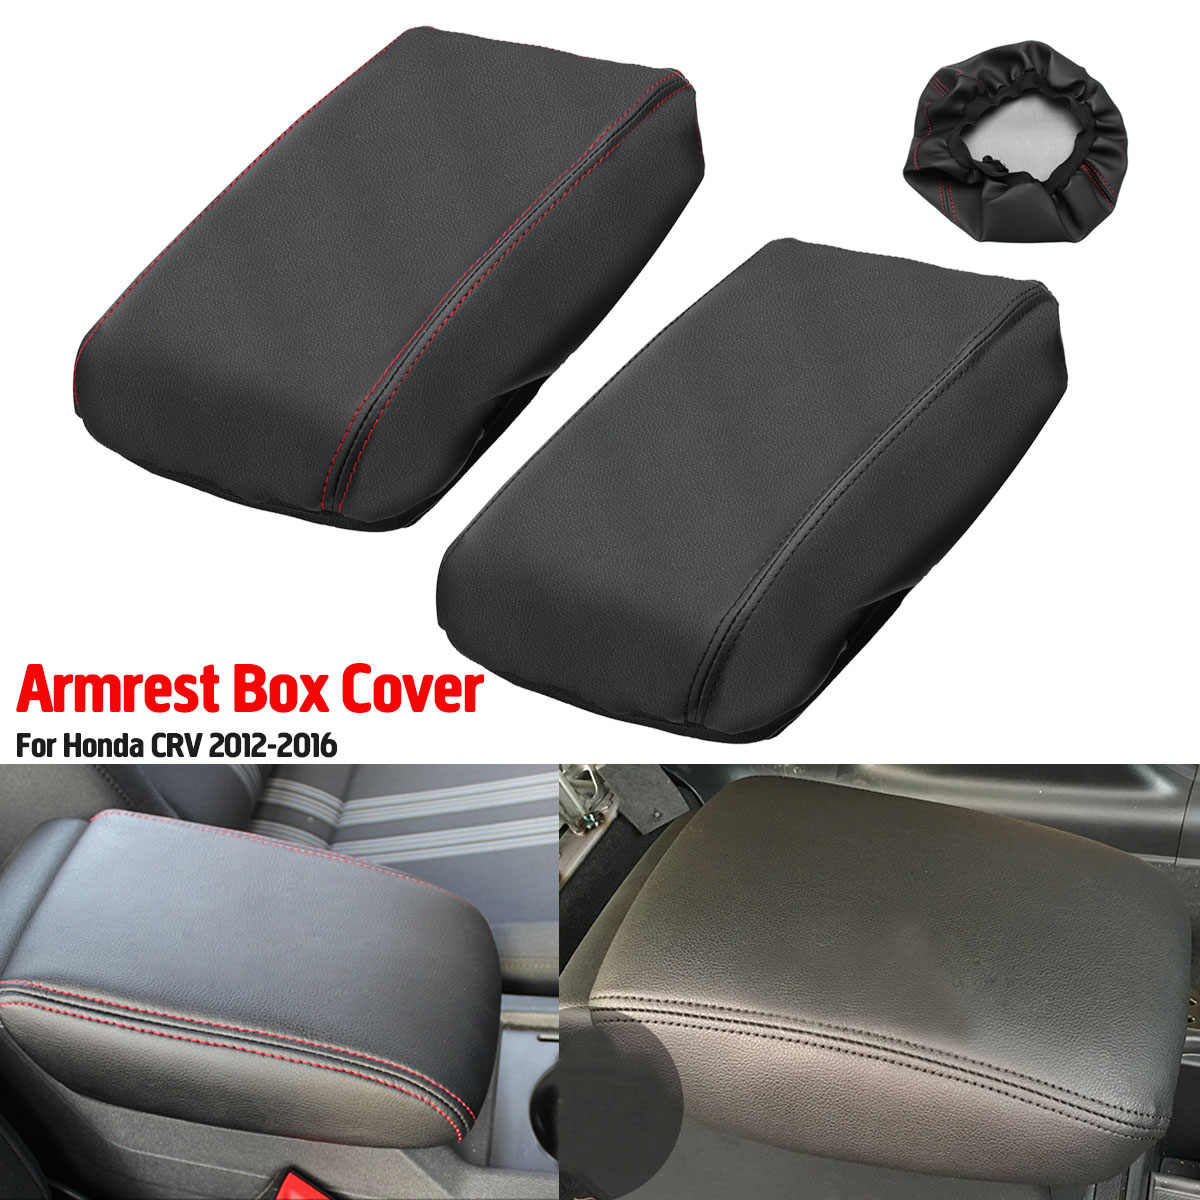 Car Seat Armrest Box Cover Center Console Pad PU Leather Covers Protection for Honda CRV 2012 2013 2014 2015 2016